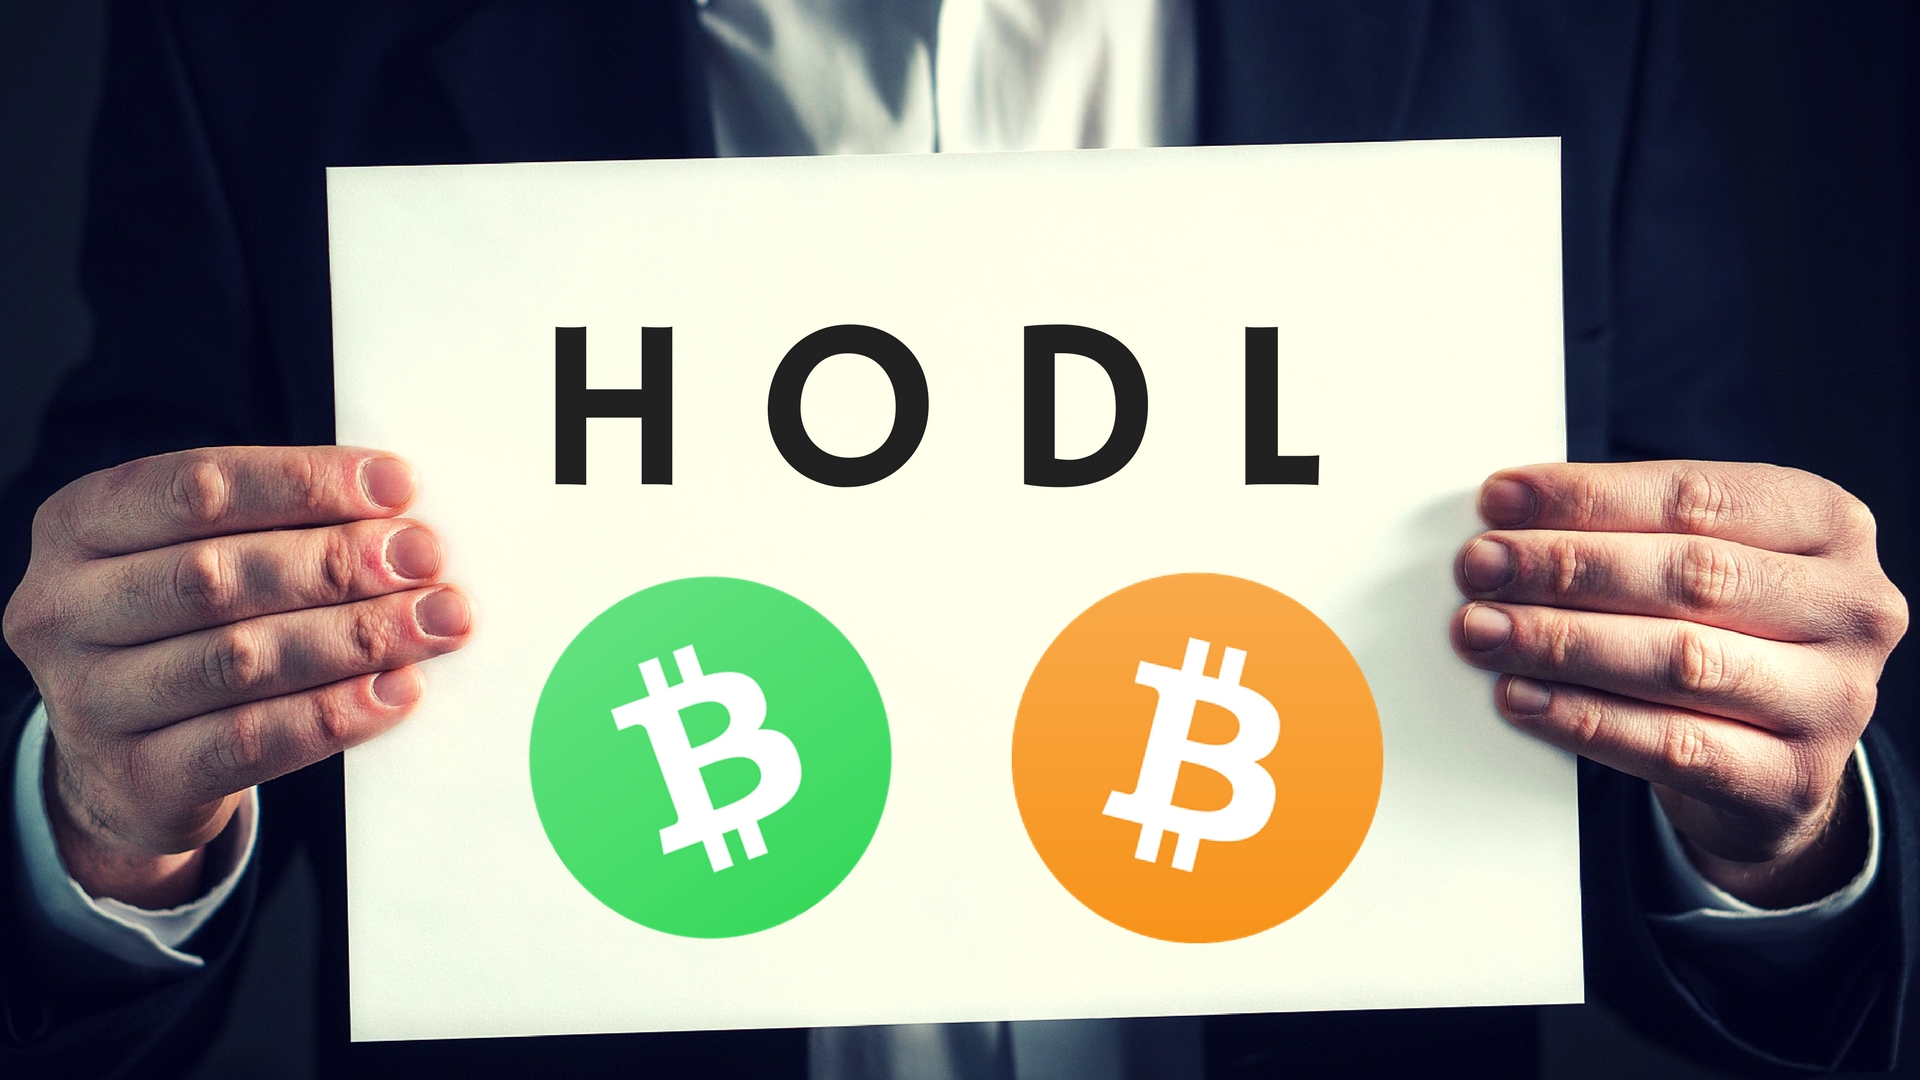 Bitcoin Takes a Nosedive, But Here's Why You Should HODL